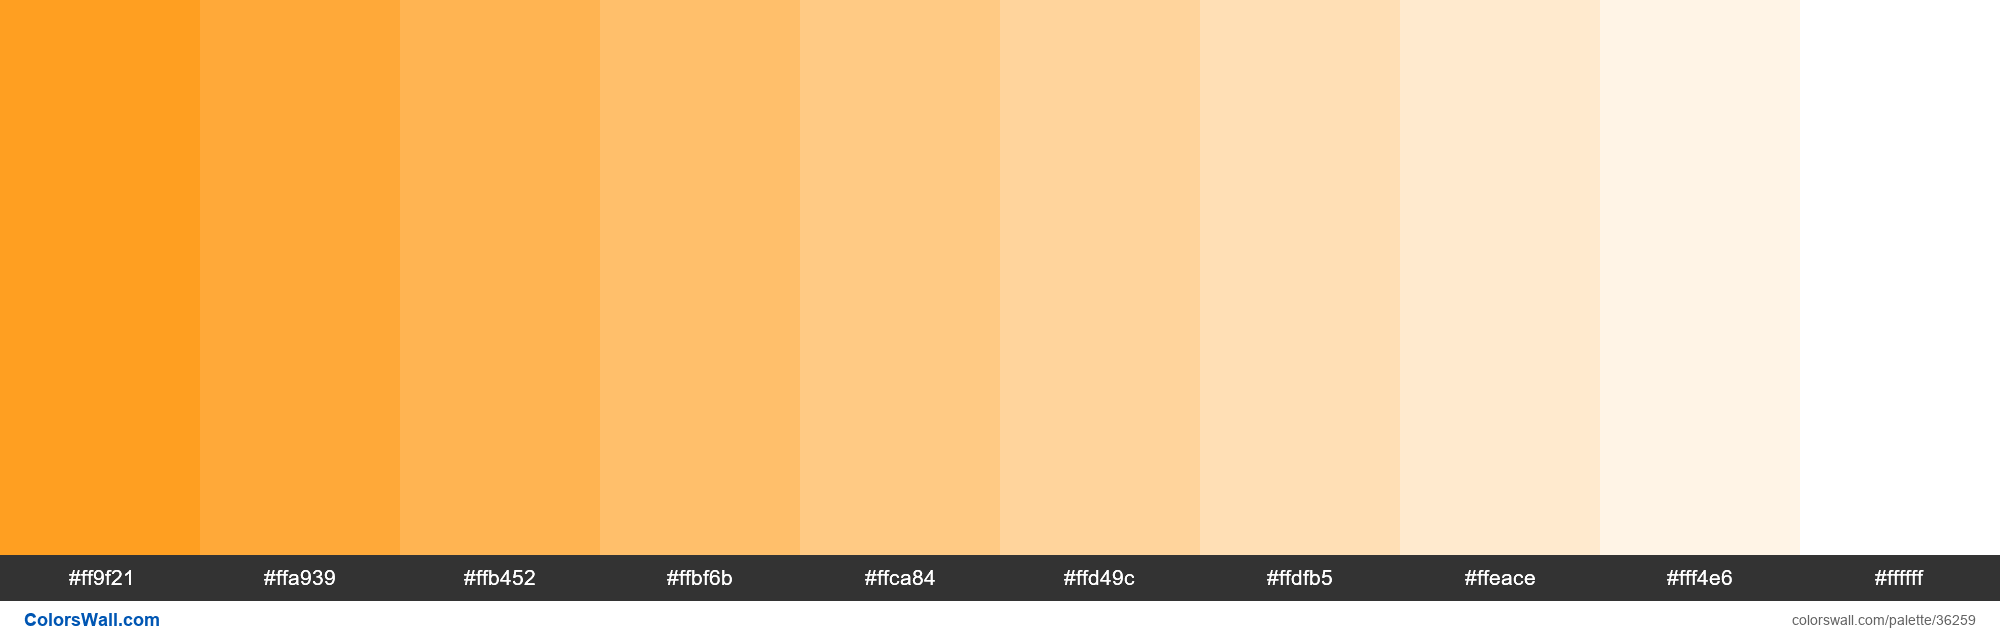 Tints XKCD Color tangerine #ff9408 hex - #36259